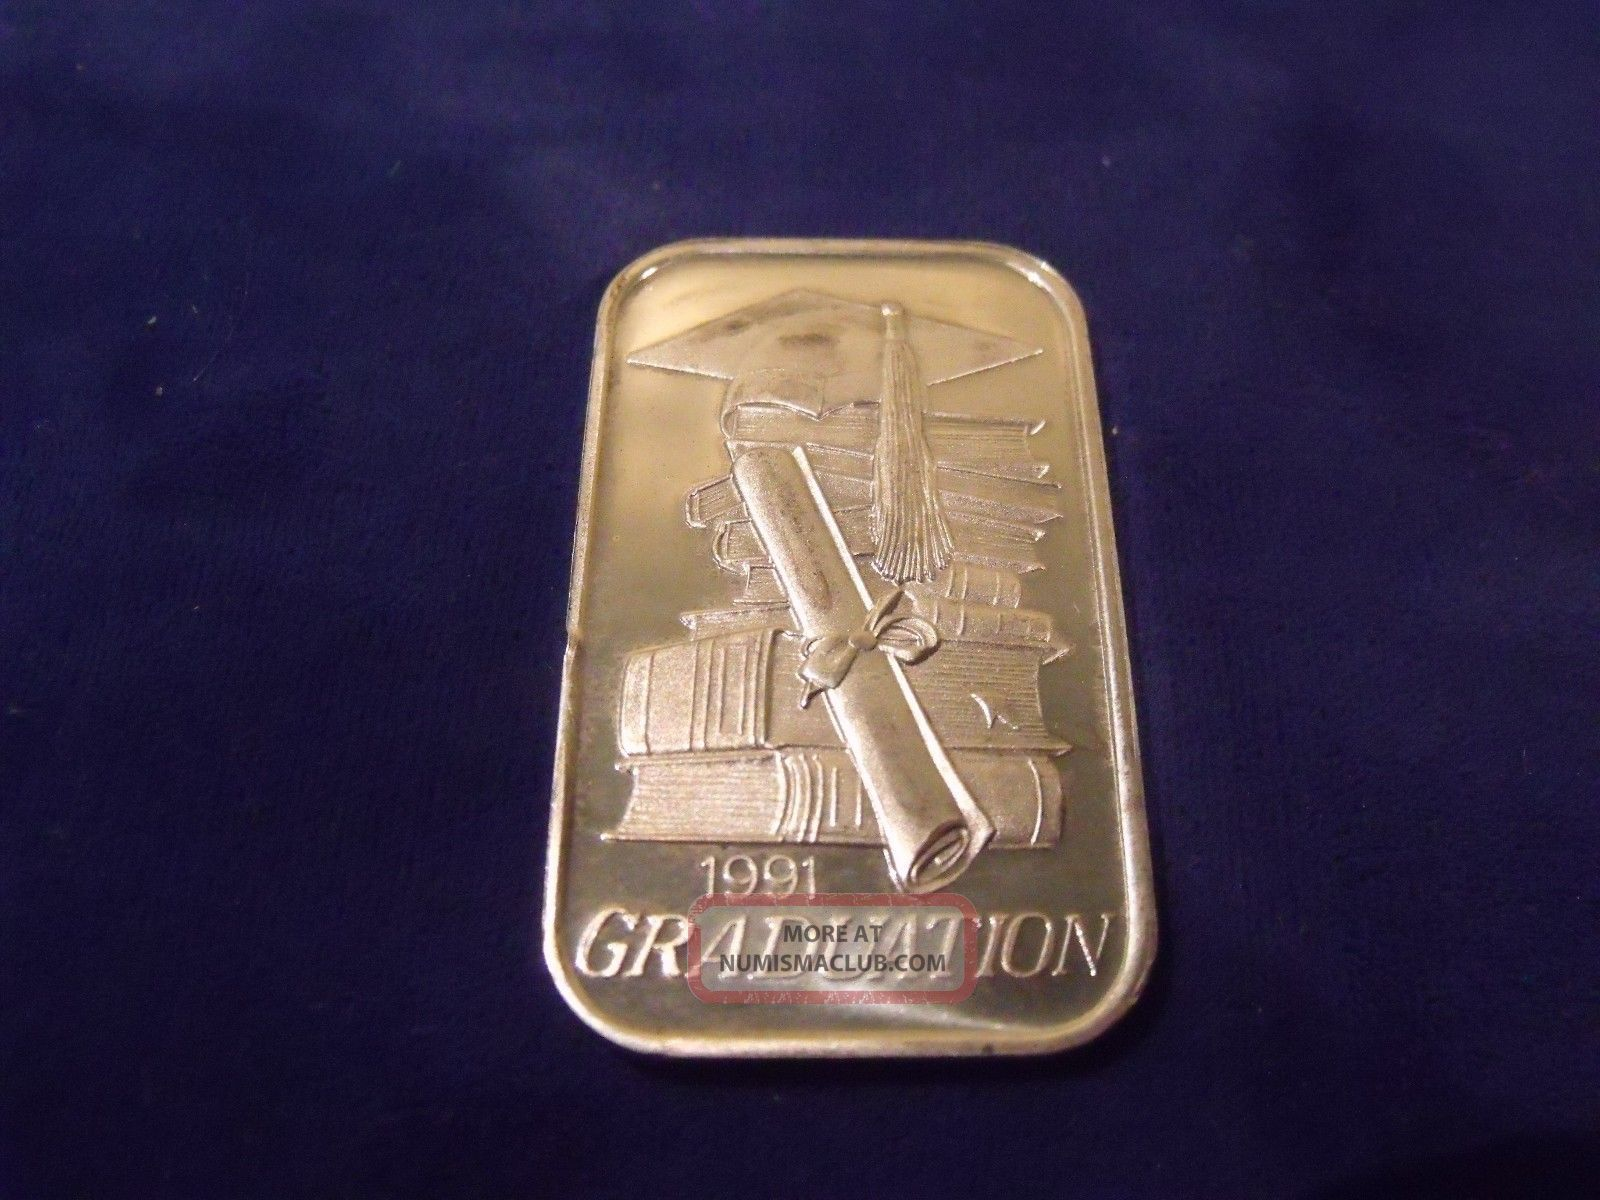 1991 Graduation One Troy Ounce 999 Fine Silver Bar